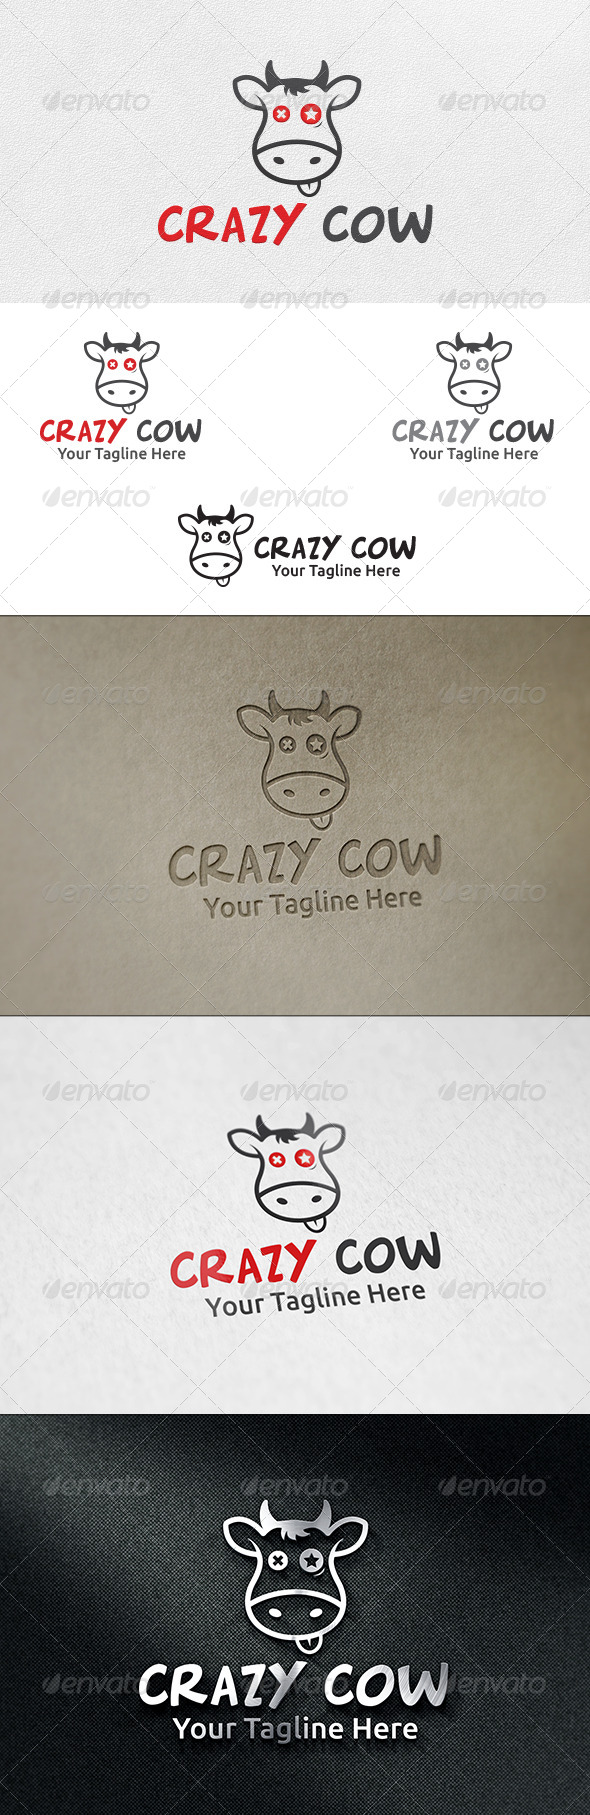 Crazy Cow - Logo Template - Animals Logo Templates